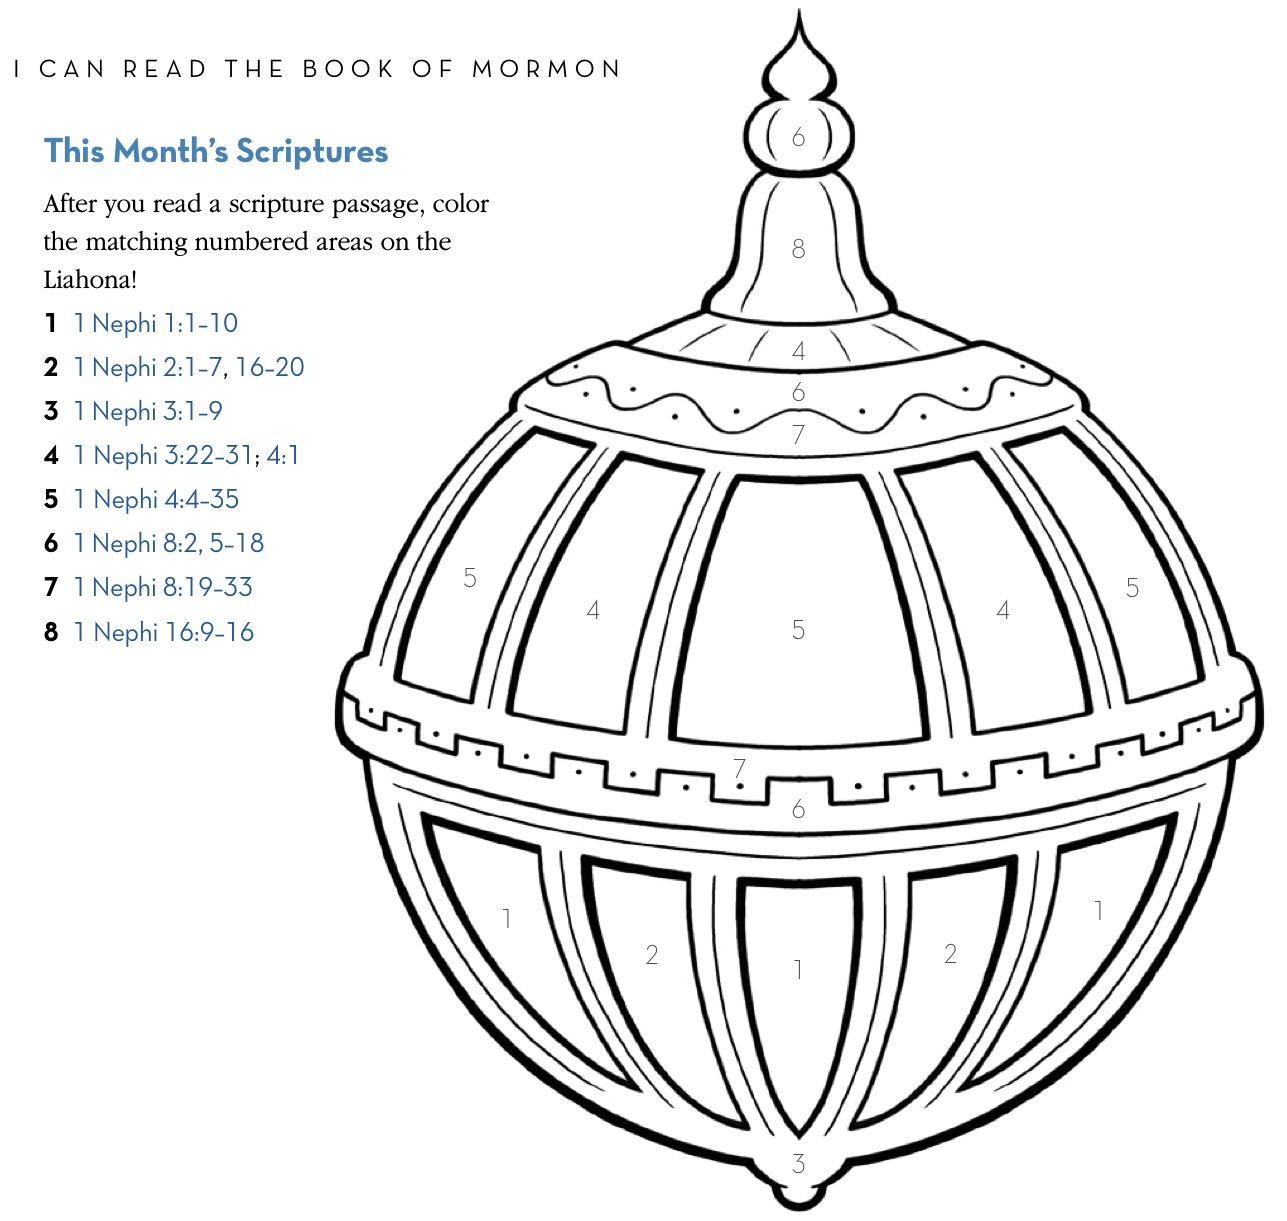 coloring pages nephi liahona - photo#26